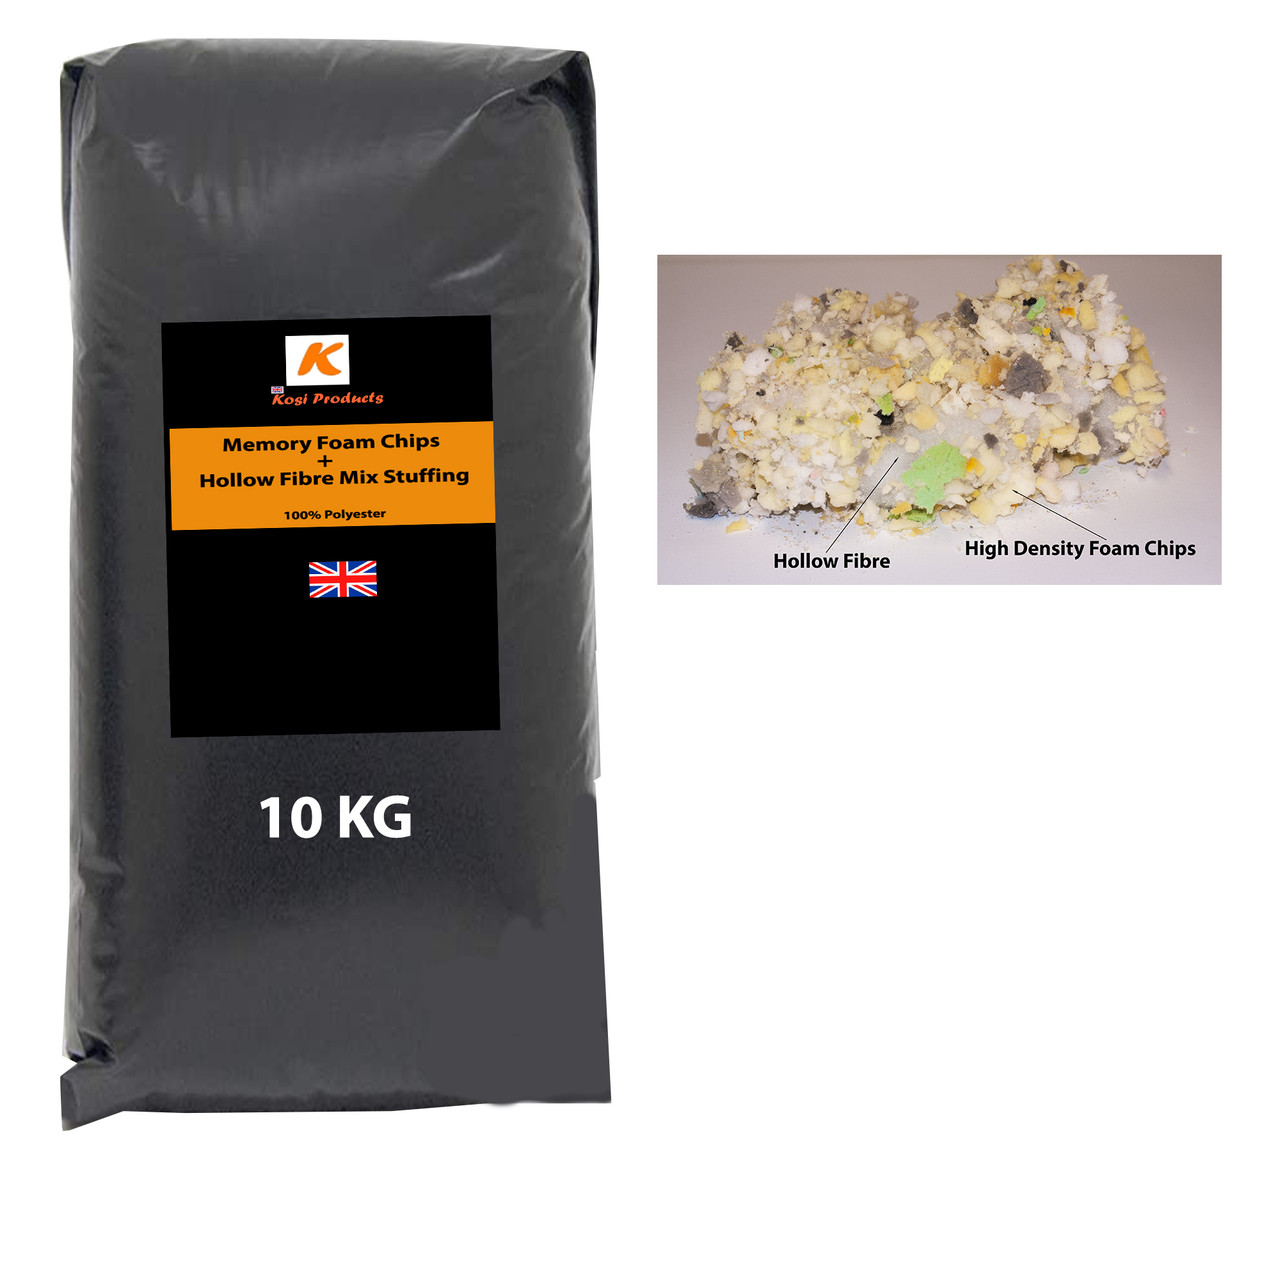 kosikrafts 10kg hollow fibre + Memory Foam mix cushion soft toy stuffing filling for cushion fillers